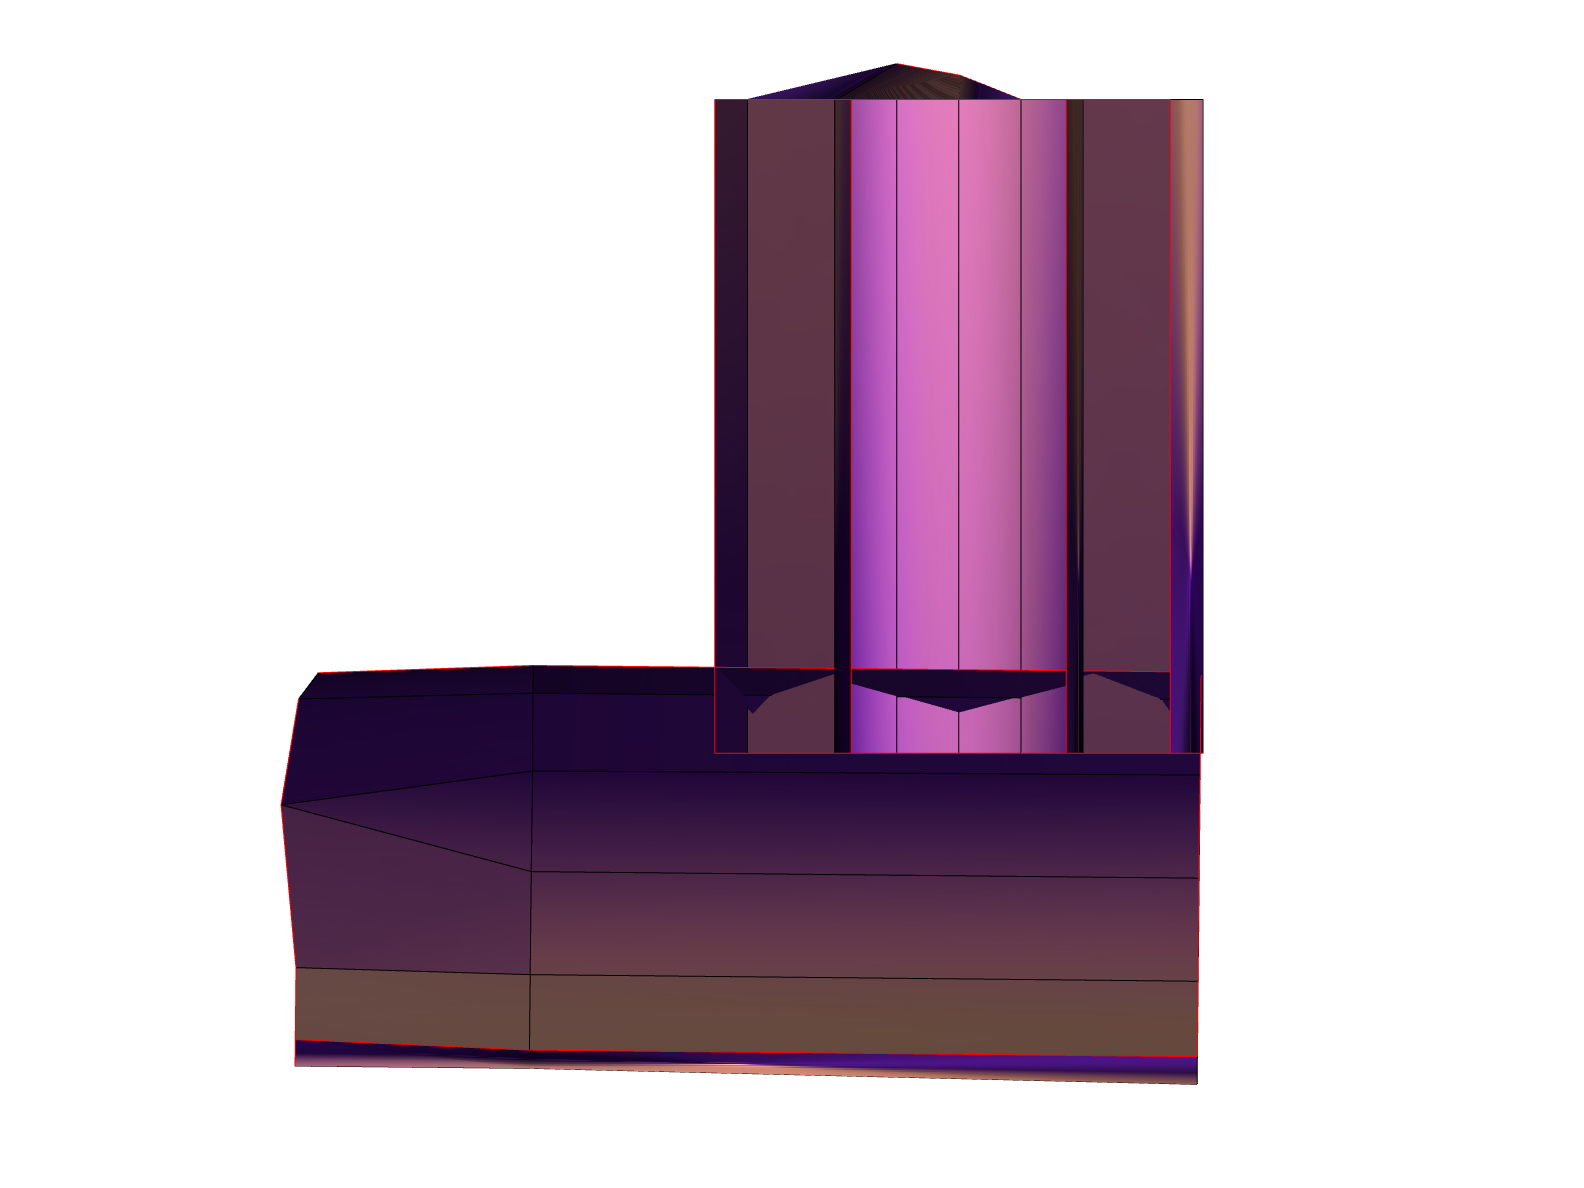 Econ - 3D design by 20nkaine Apr 4, 2018